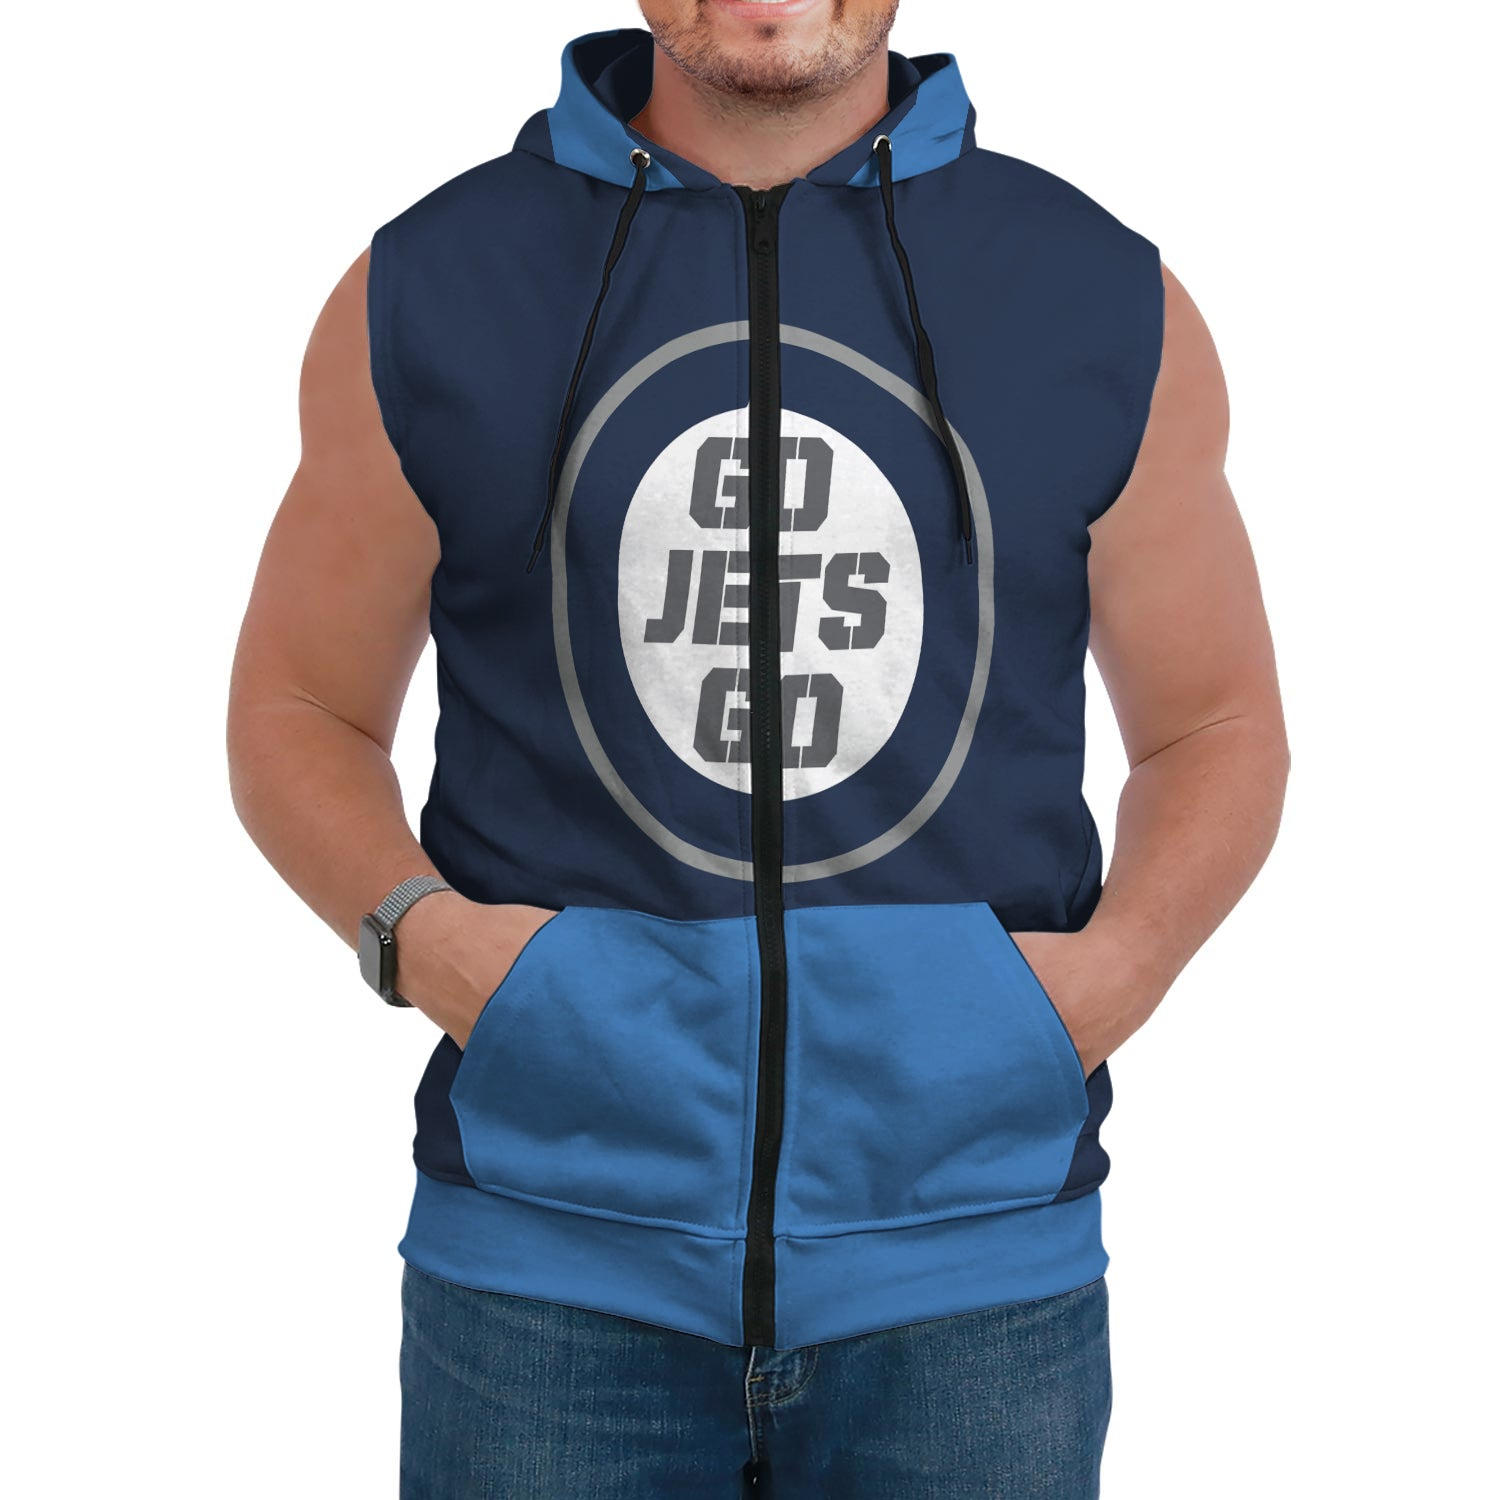 Exclusive For Fans Custom Sleeveless  Hoodie - Blindly Shop